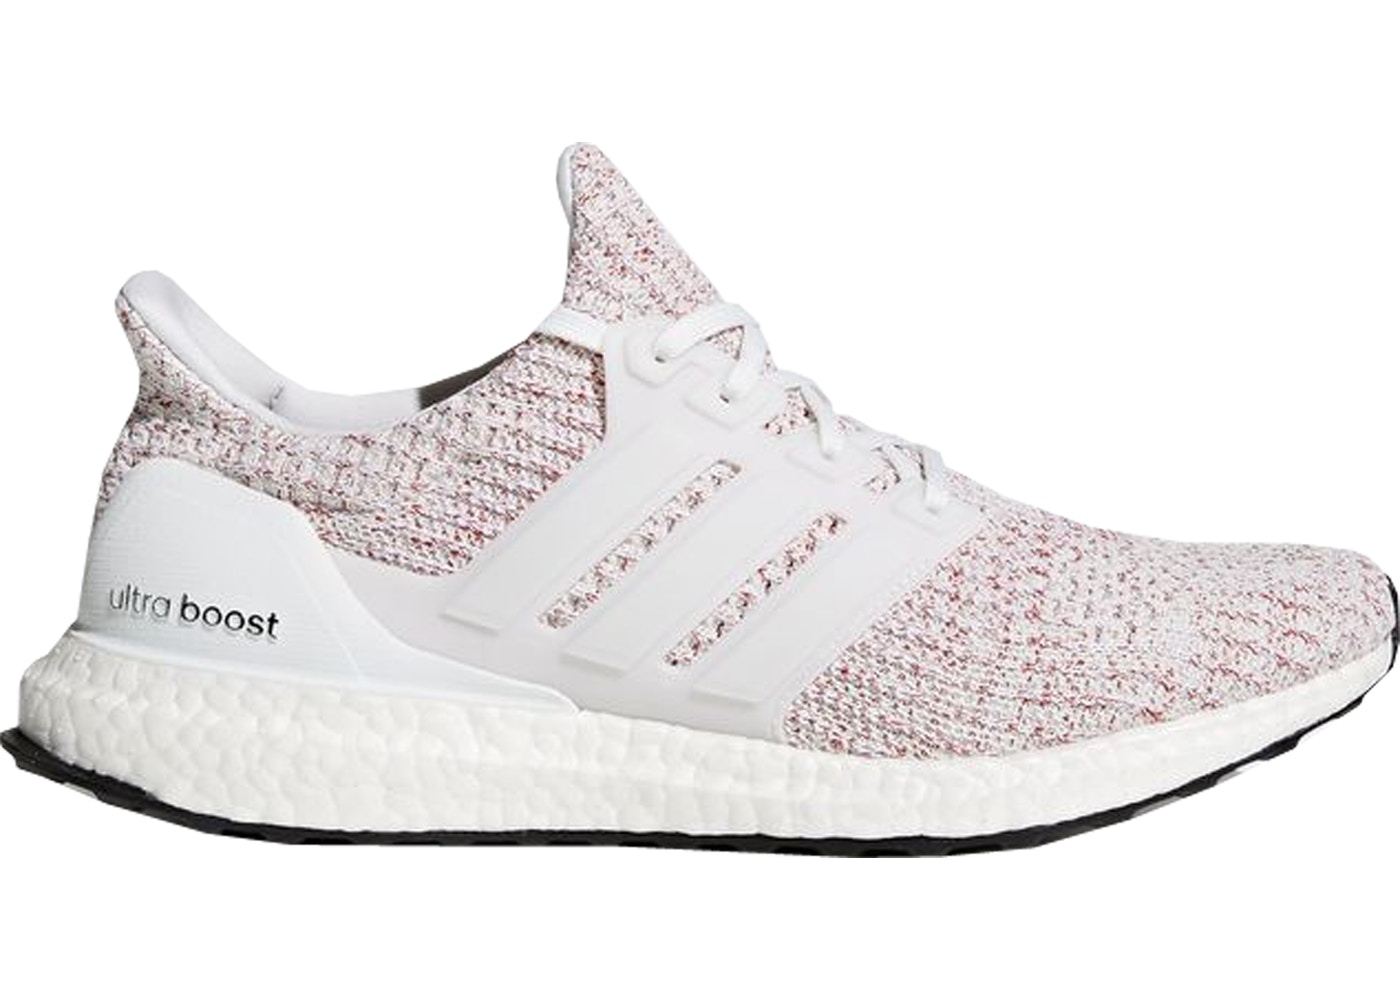 0684a89ee1af2 ... BB6169 Mens Athletic Trainer . adidas Ultra Boost 4.0 Candy Cane . ...